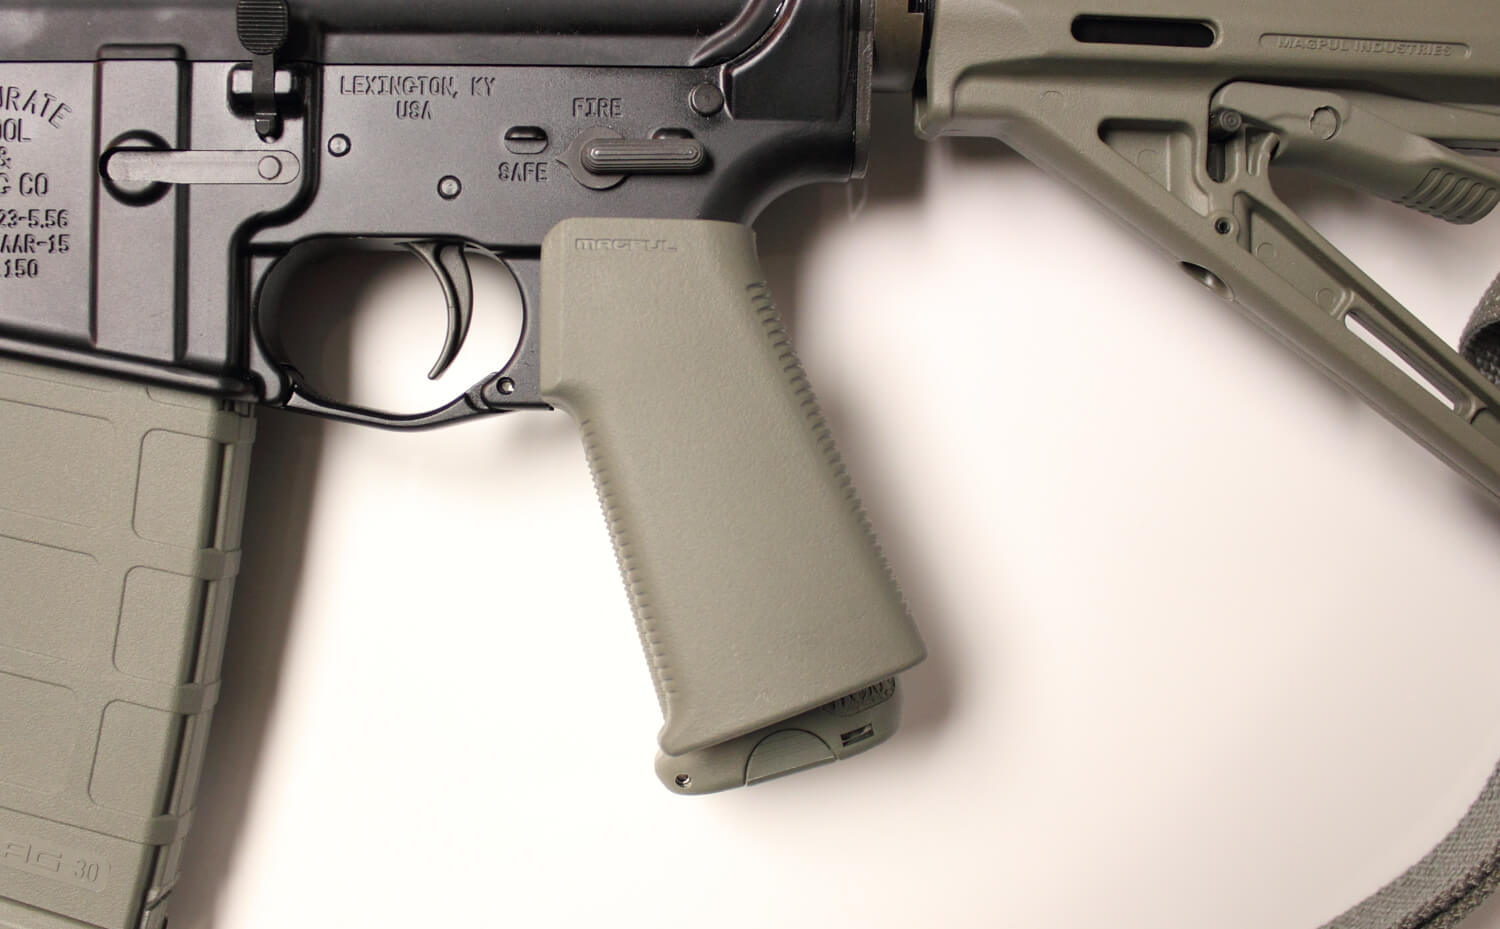 Magpul K-Grip, BCM Gunfighter